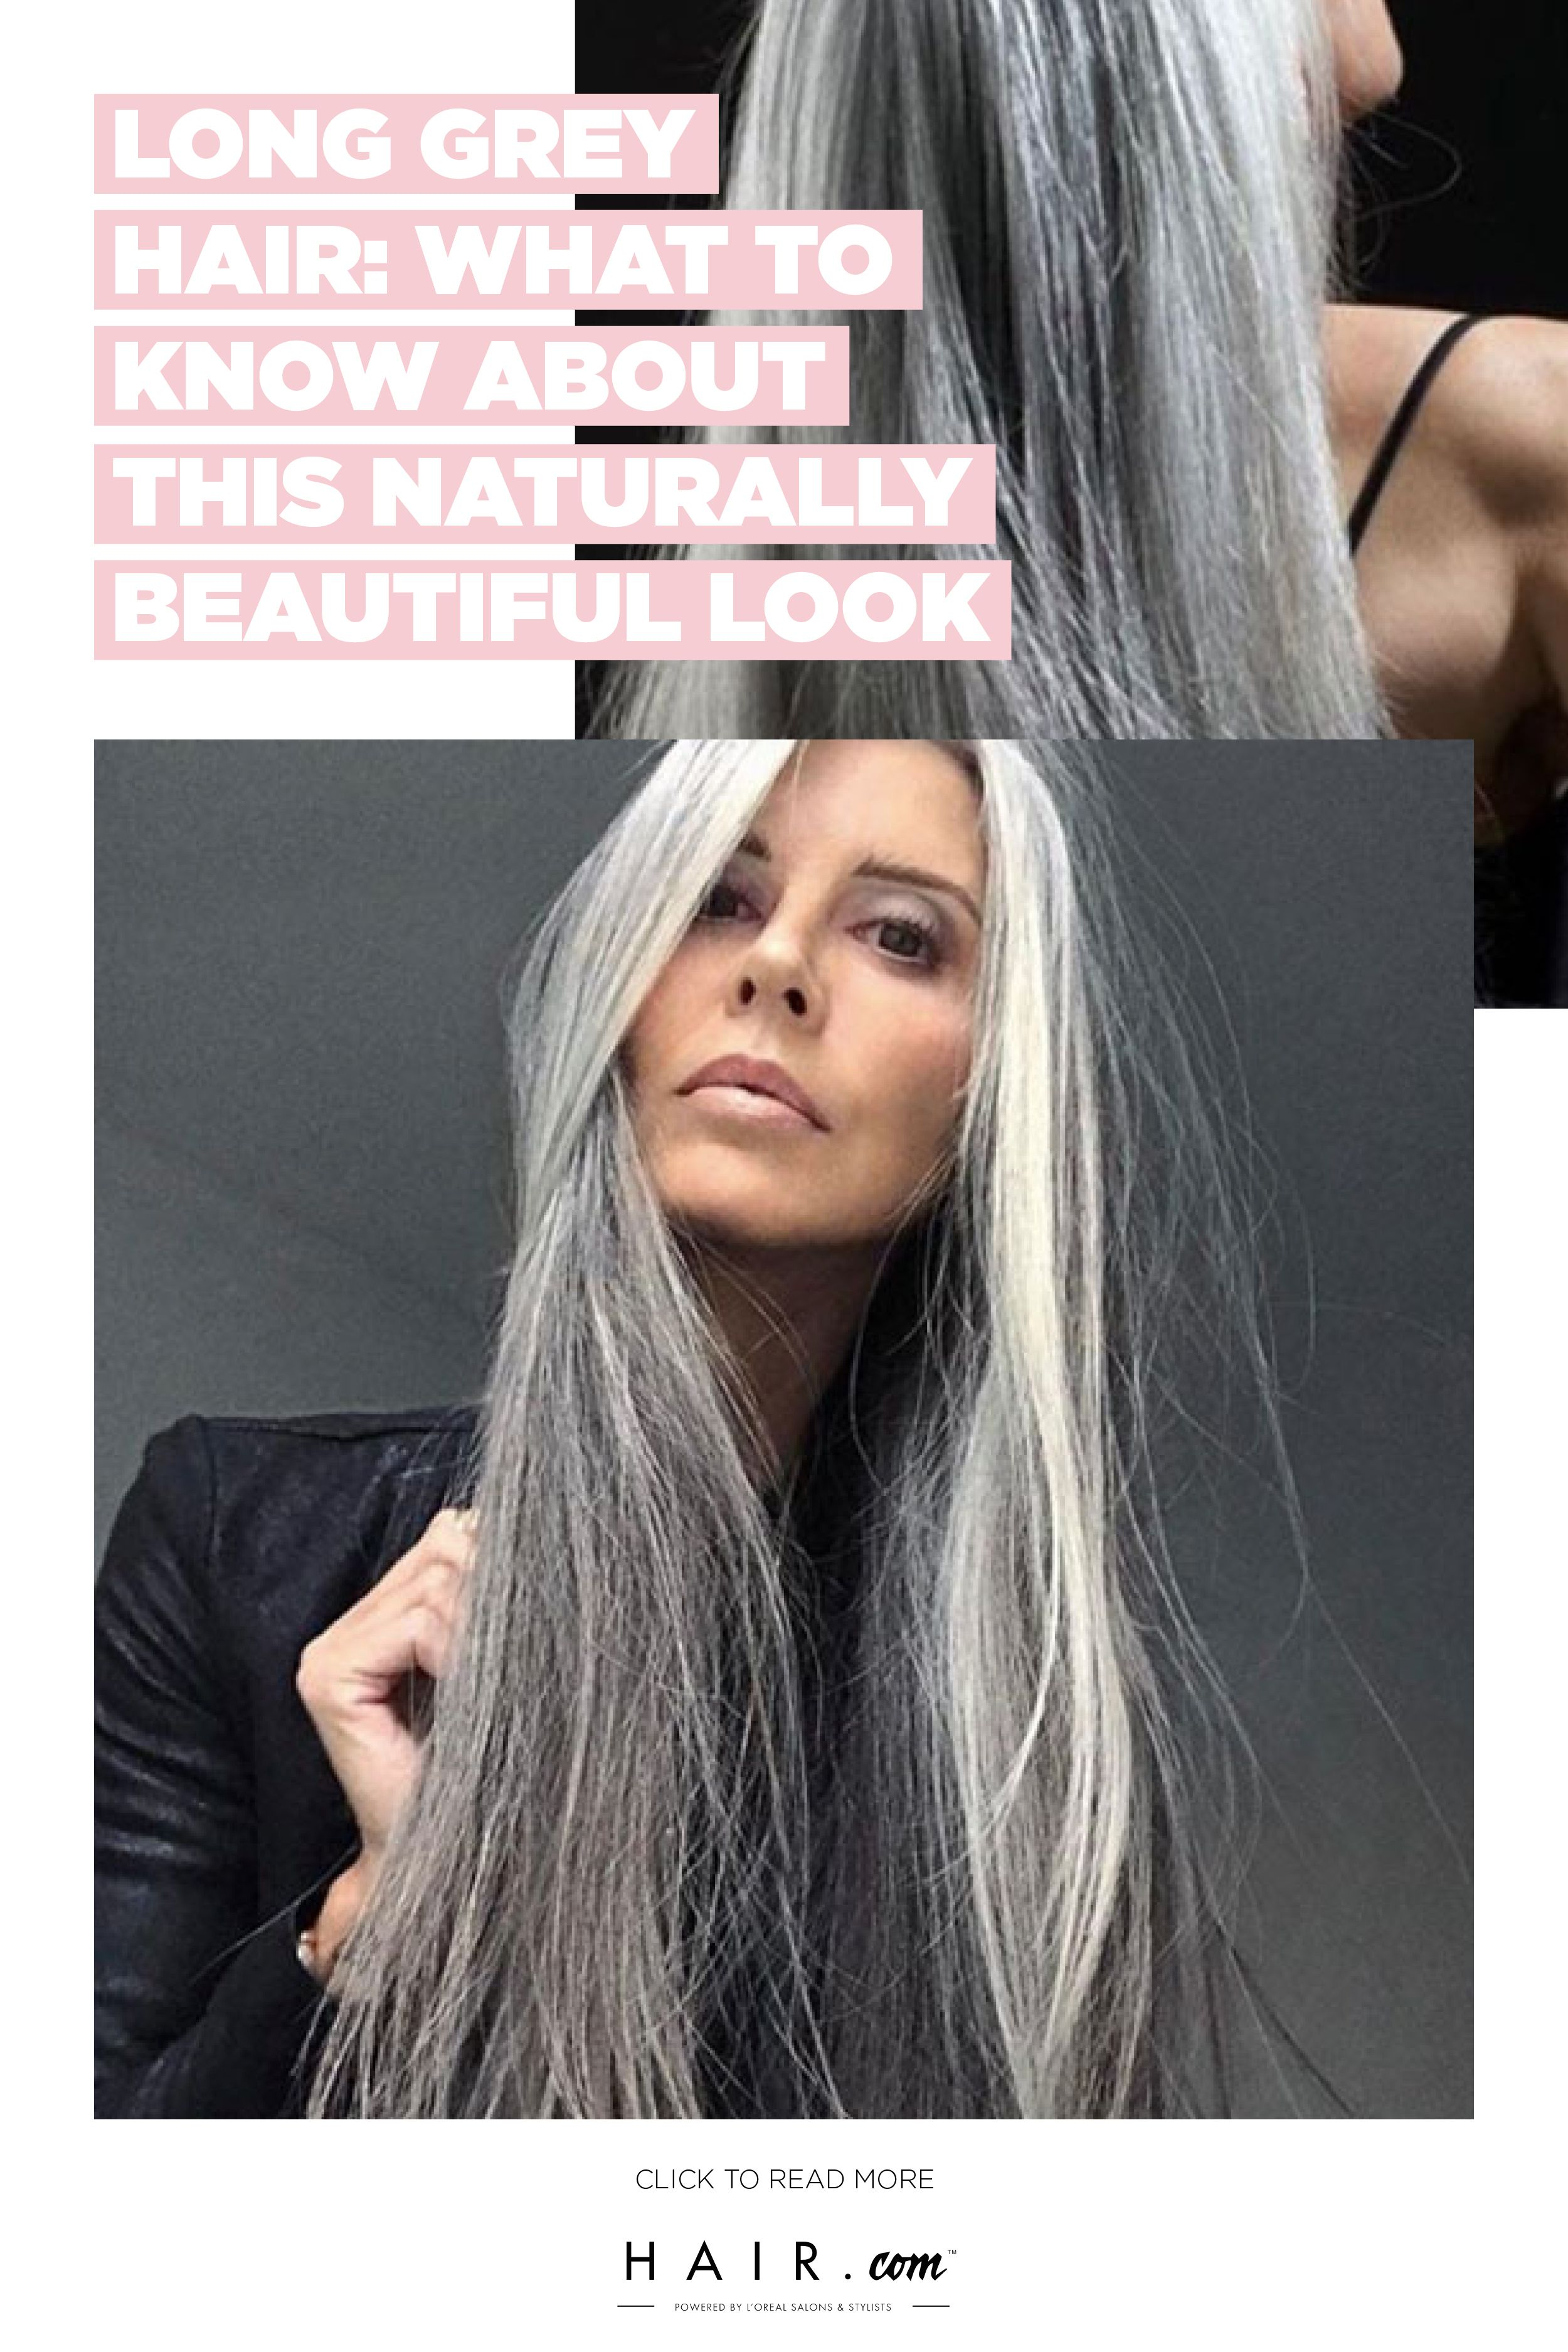 Long Grey Hair What To Know About This Naturally Beautiful Look